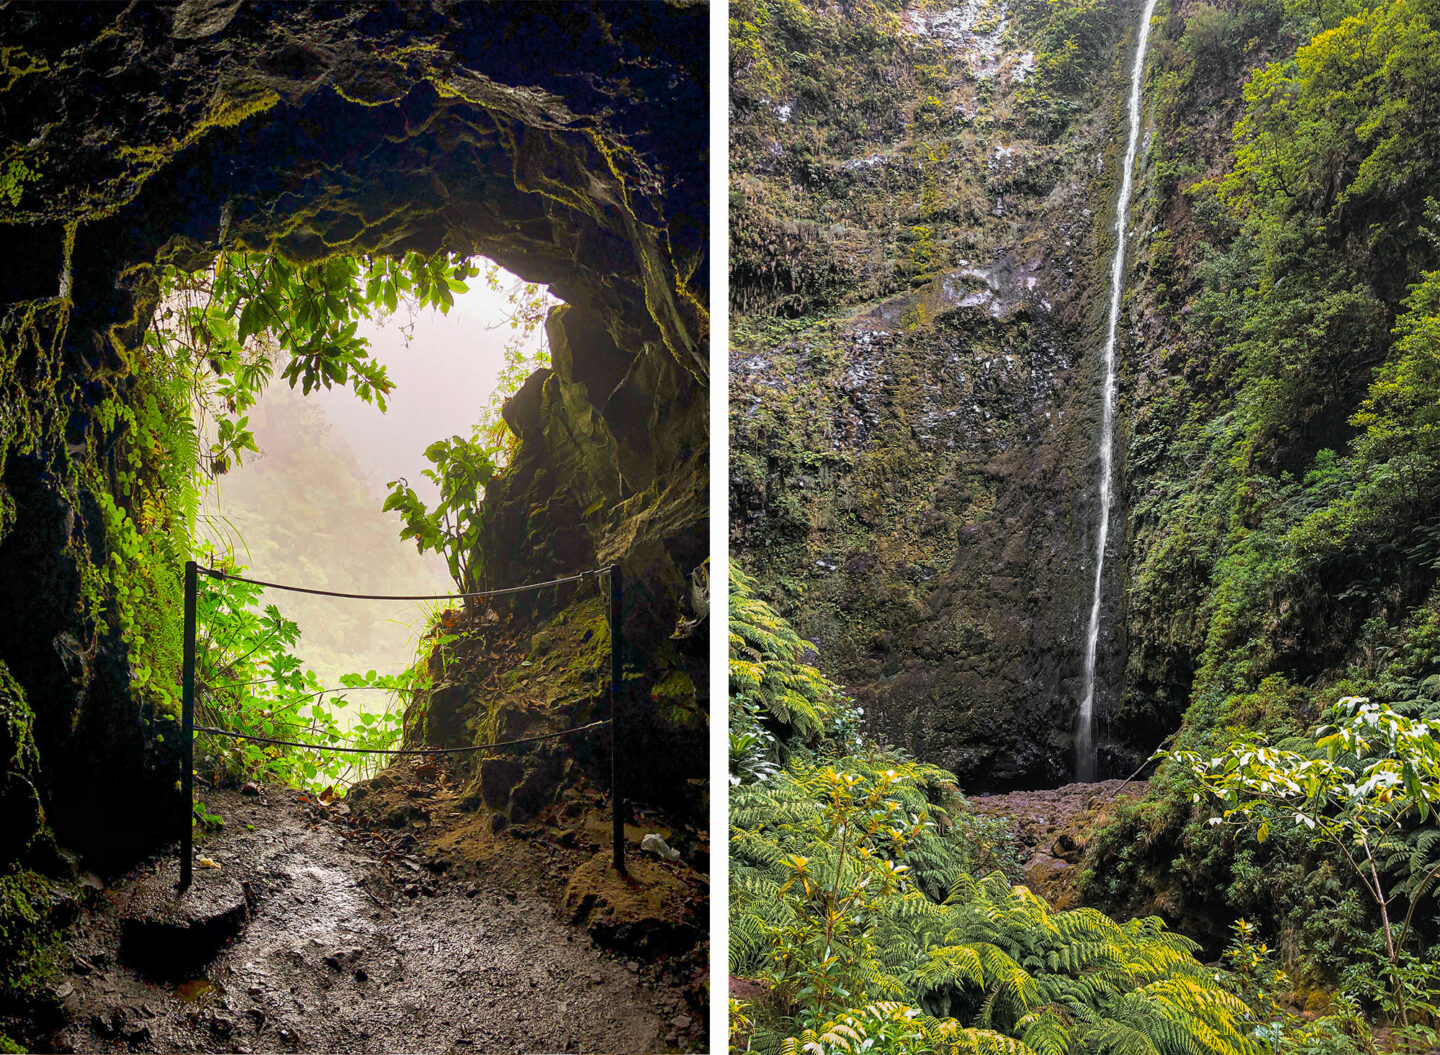 levada walk-Top-things-to-do-in-madeira-Bucket-list--Instagram-Story-Template--kelseyinlondon-Kelsey-Heinrichs--What-to-do-in-madeira--Where-to-go-in-madeira-top-places-in-madeira-